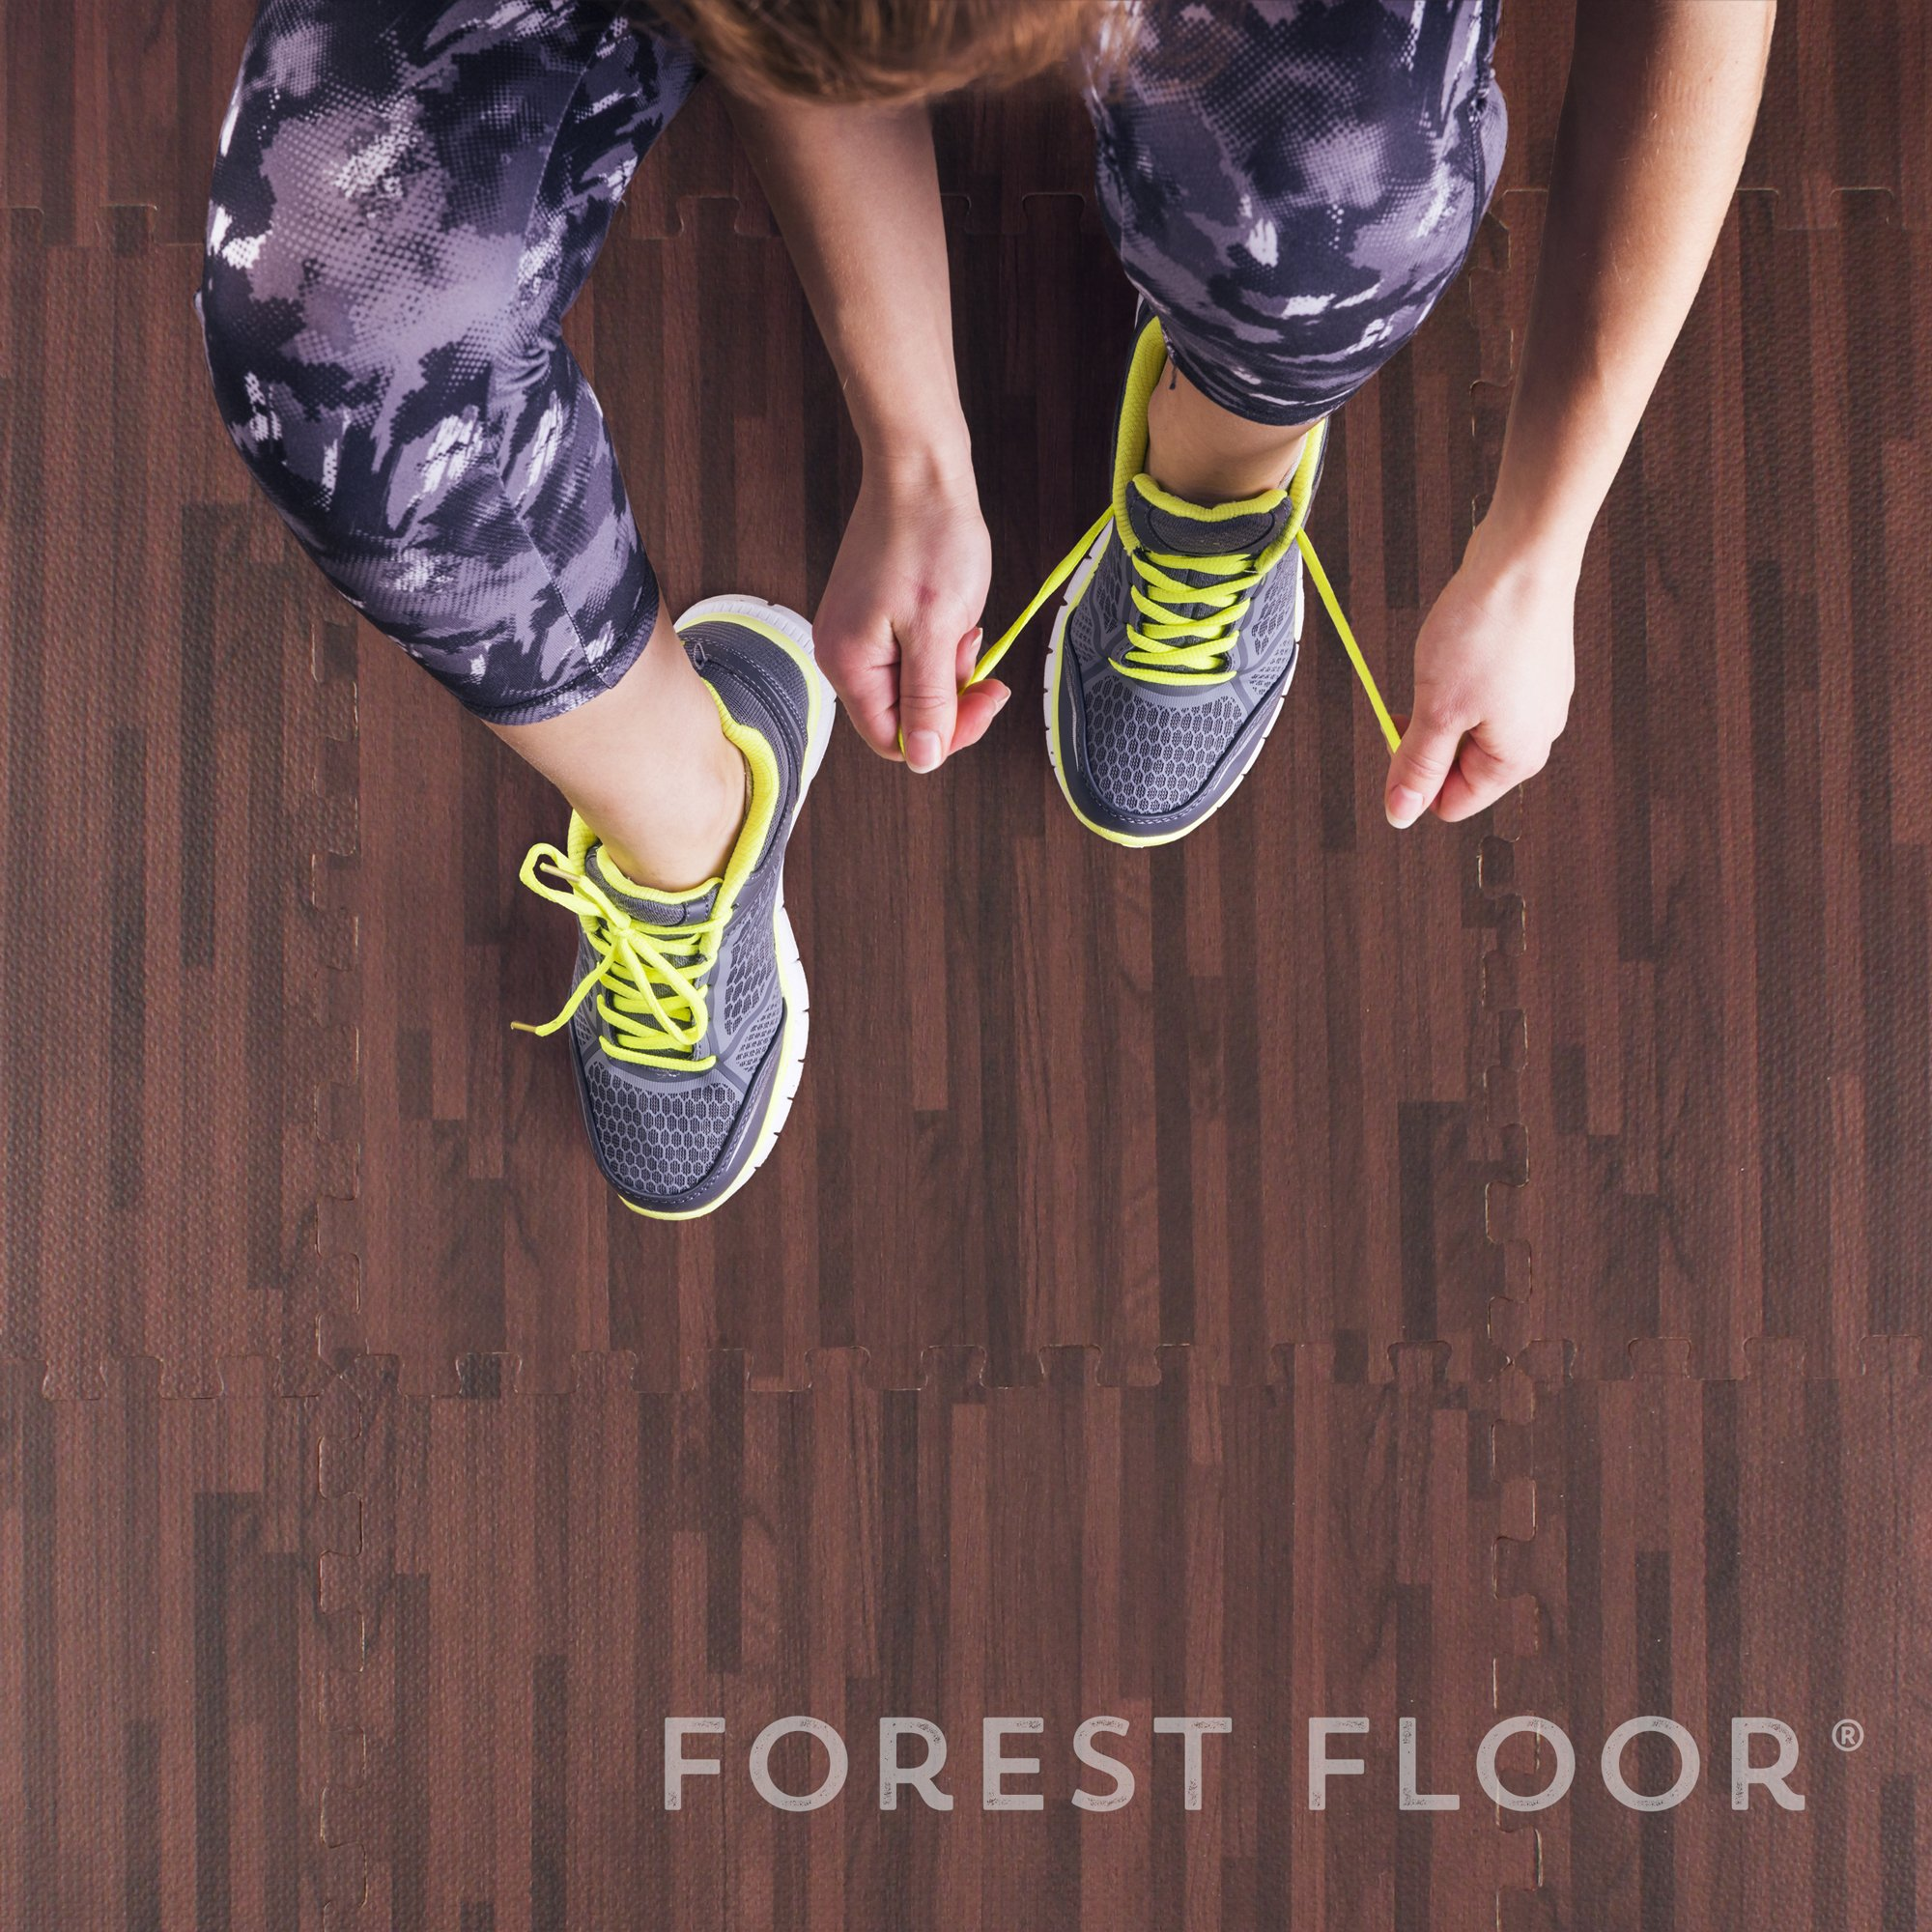 Forest Floor 3/8'' Thick Printed Wood Grain Interlocking Foam Floor Mats, 16 Sq Ft (4 Tiles), Cherry by Forest Floor (Image #6)